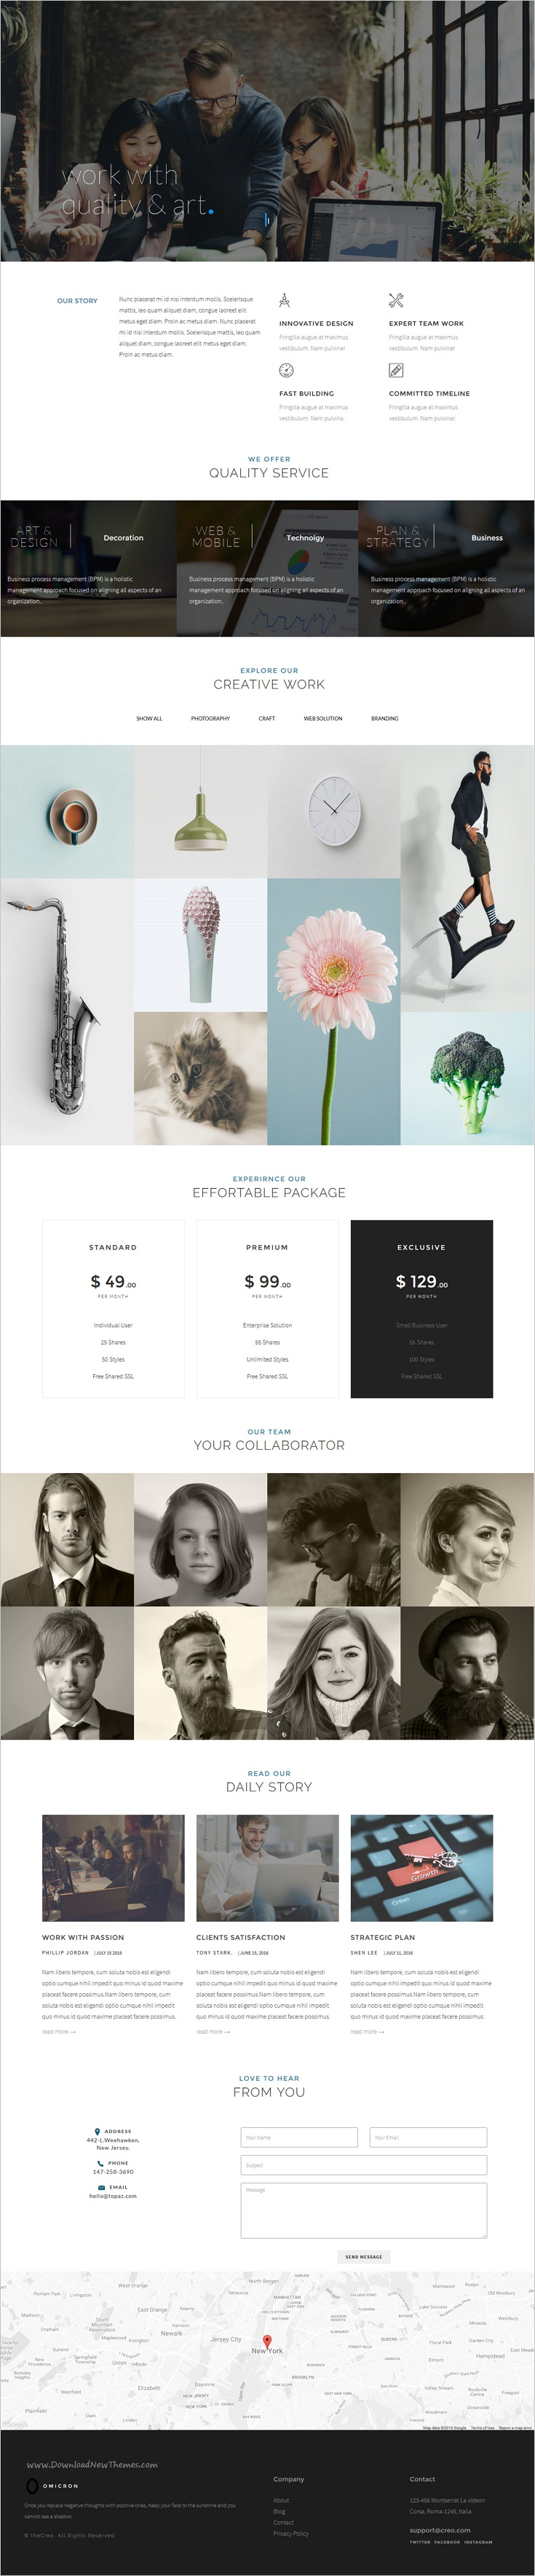 Omicron is wonderful one page 6in1 #bootstrap HTML theme for multipurpose #onepage #business websites download now➩ https://themeforest.net/item/omicron-one-page-multipurpose-html-template/18858692?ref=Datasata